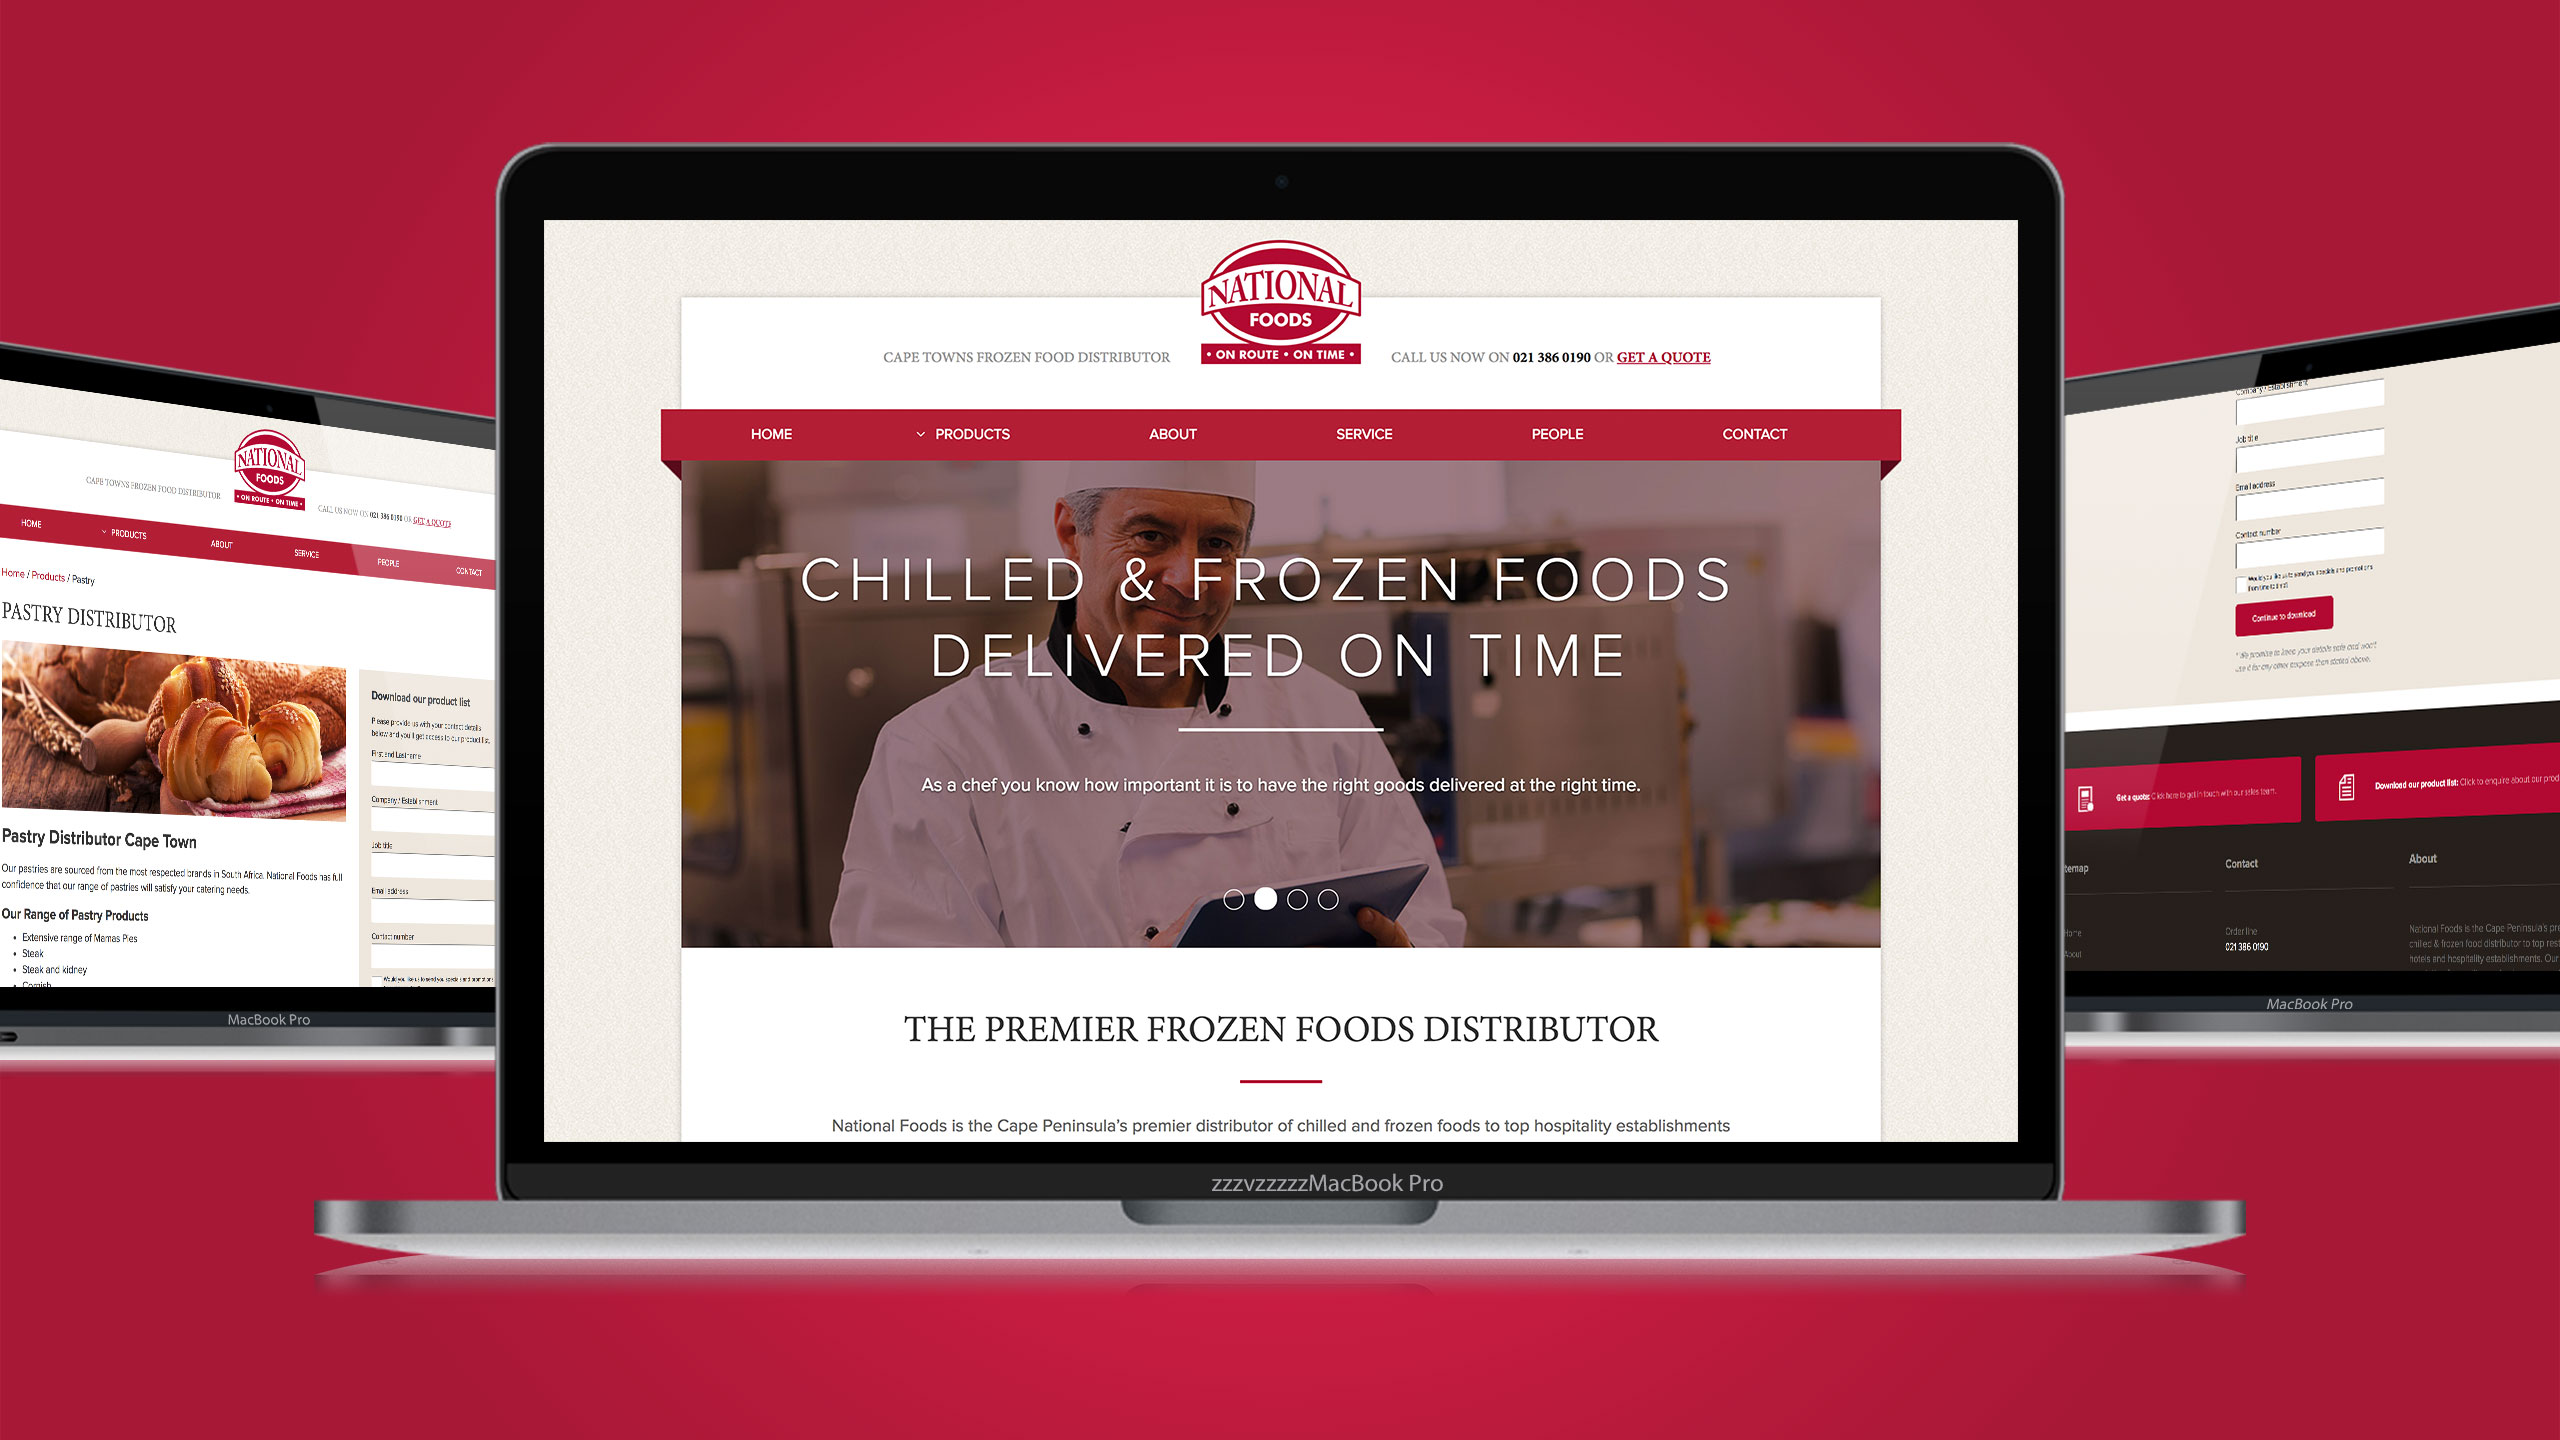 Brand identity design and online marketing for National Foods